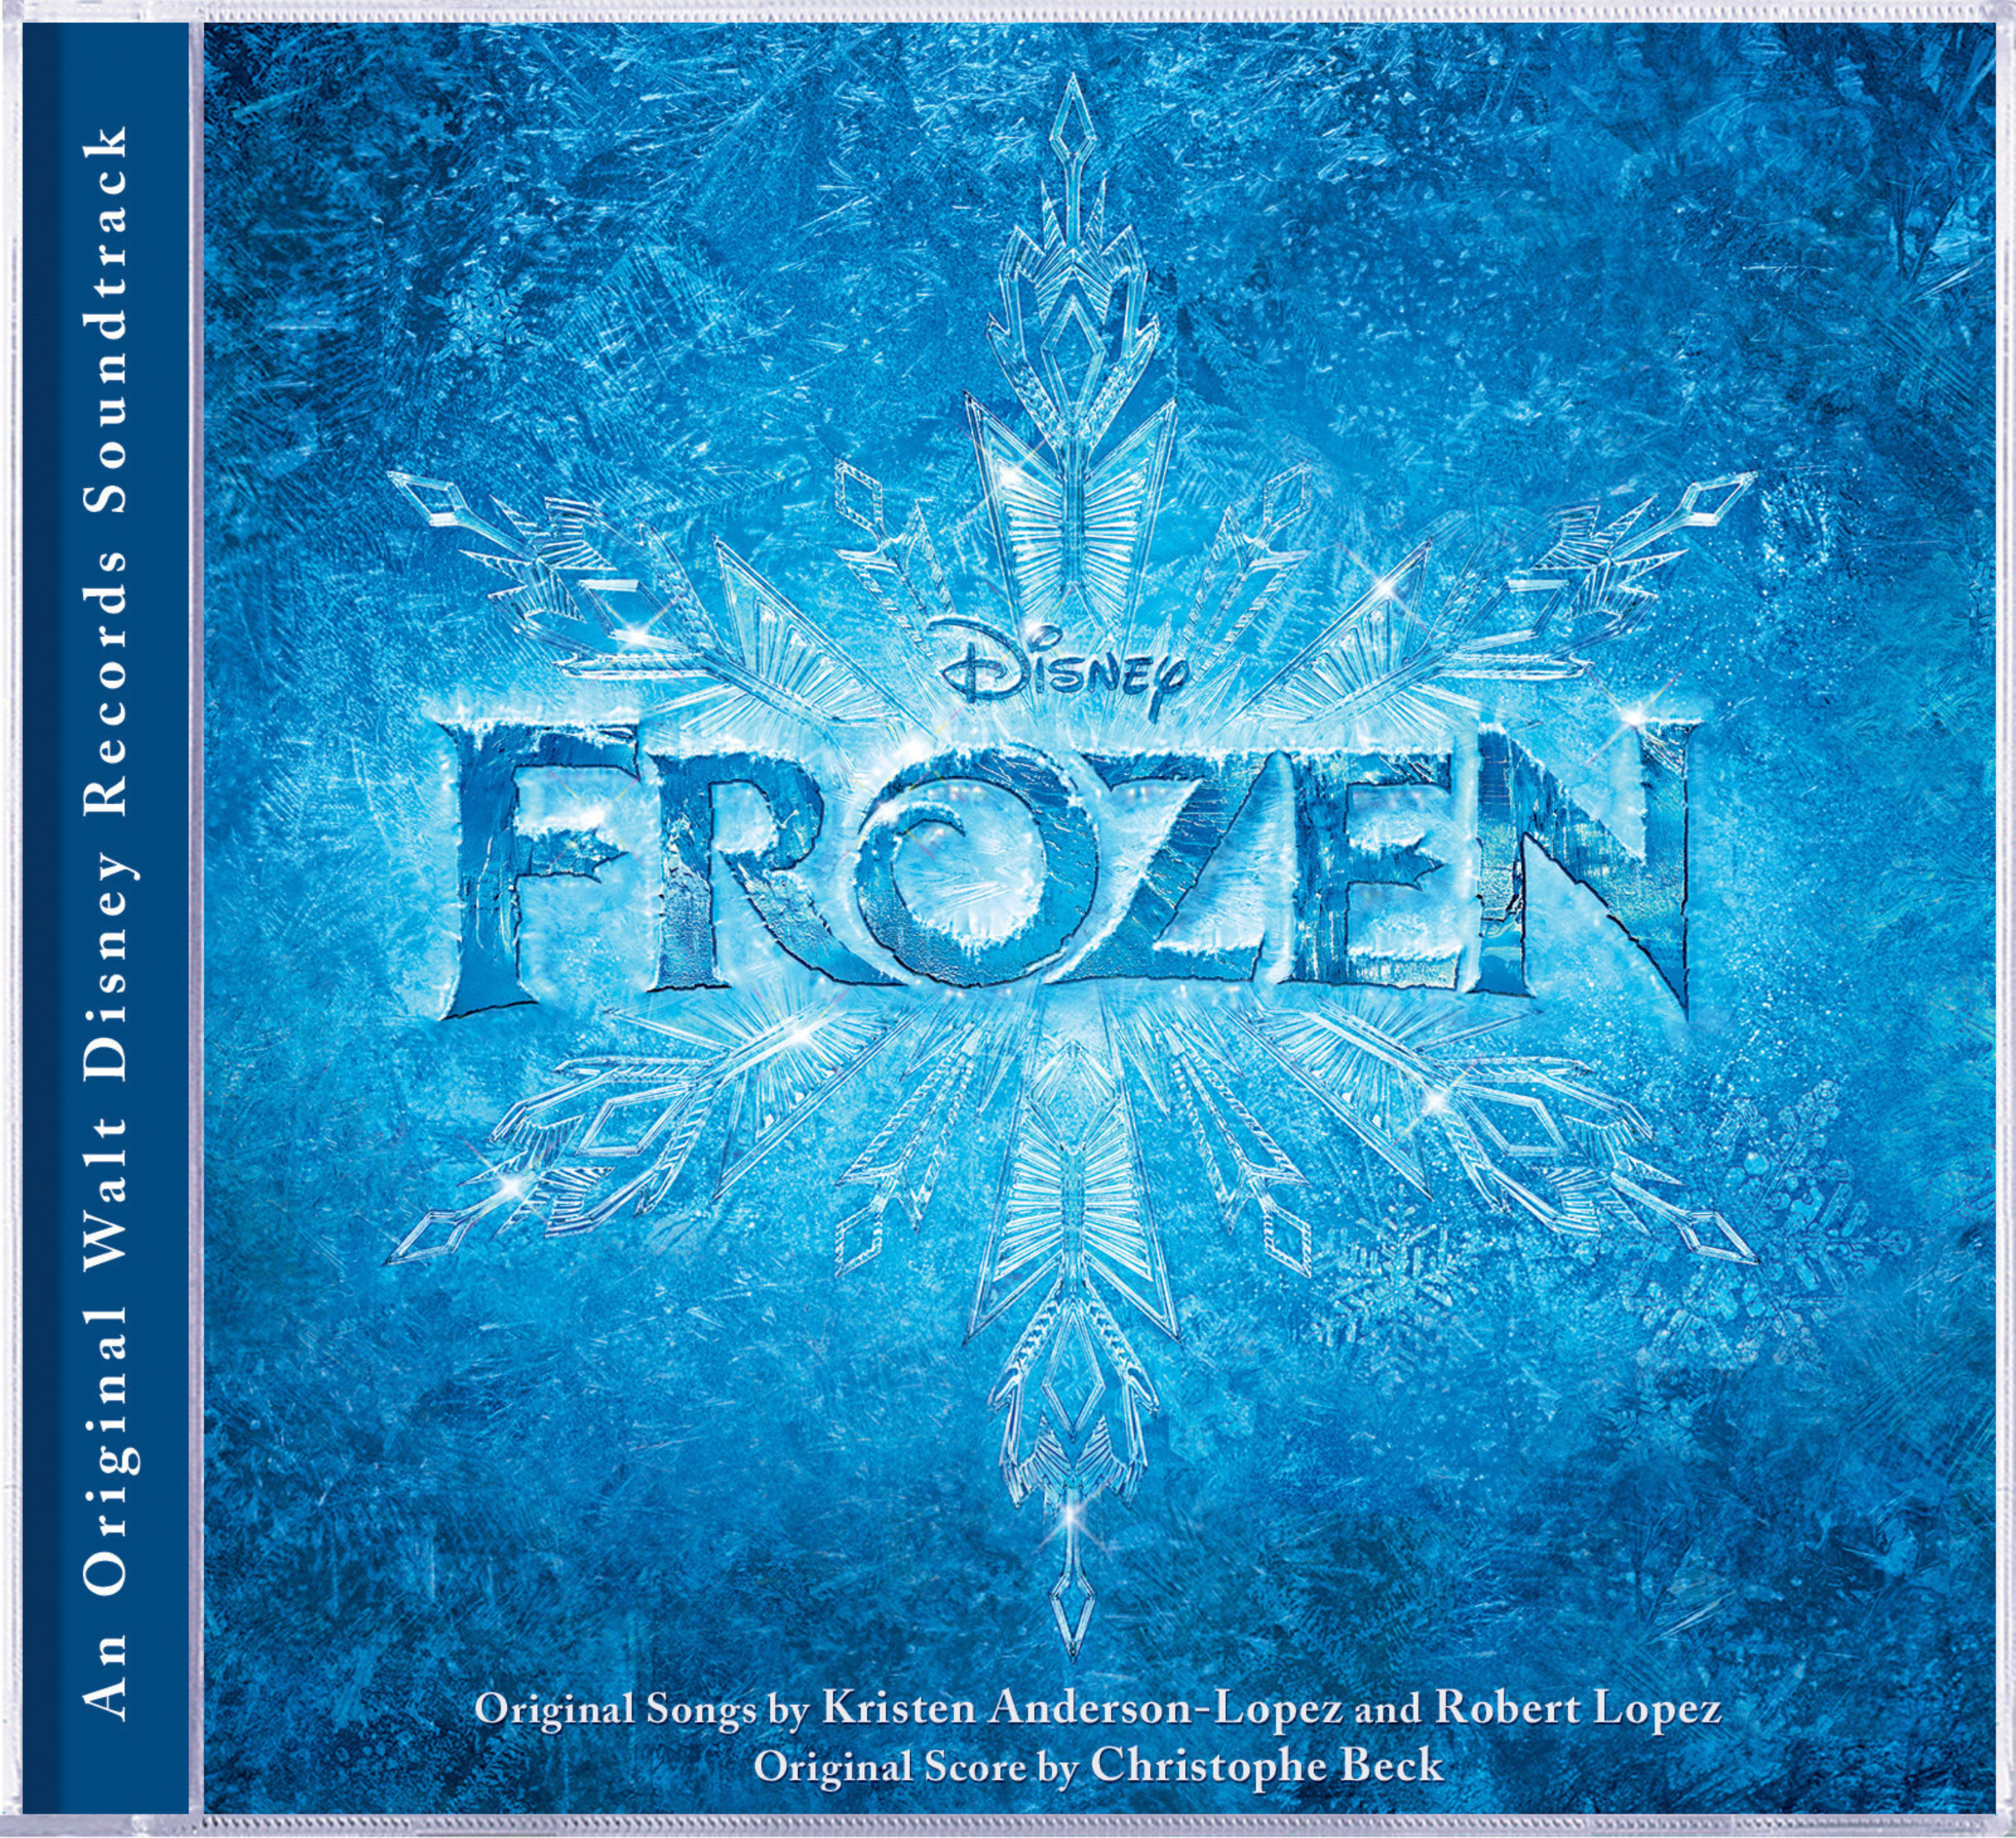 Frozen Soundtrack Ranked No. 1 Top Selling Album On The 2014 Year-End Billboard 200 Album Chart